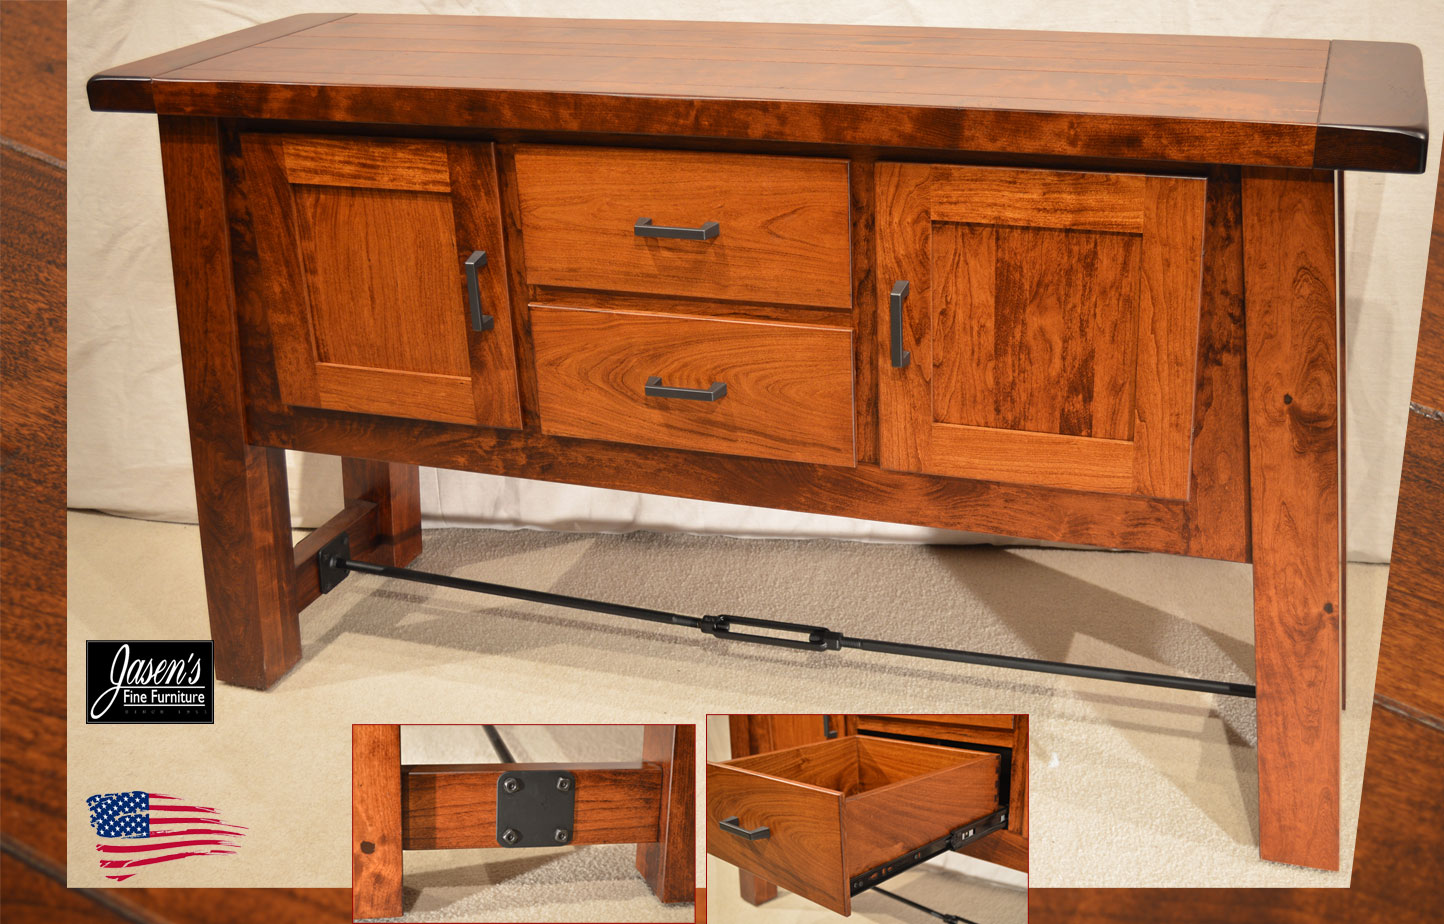 Amish Rustic Dining Room Sideboard Server Buffet Cambridge: Jasen's Fine Furniture- Since 1951